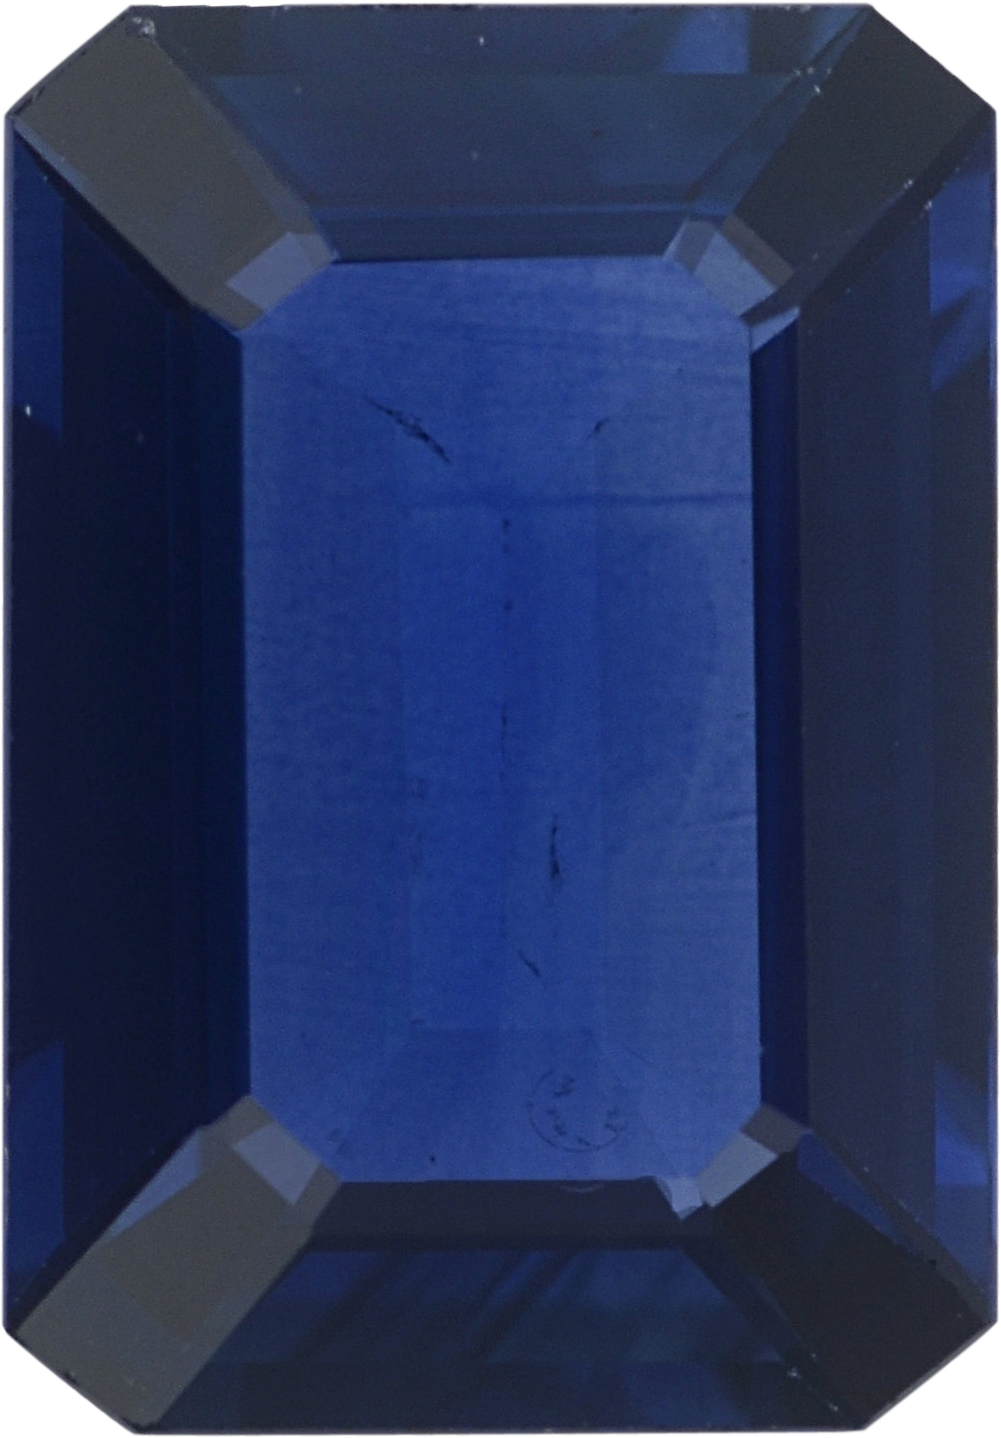 Stunning Loose Blue Sapphire Gem in Emerald Cut, Violetish Blue, 7.05 x 4.91 mm, 0.93 carats